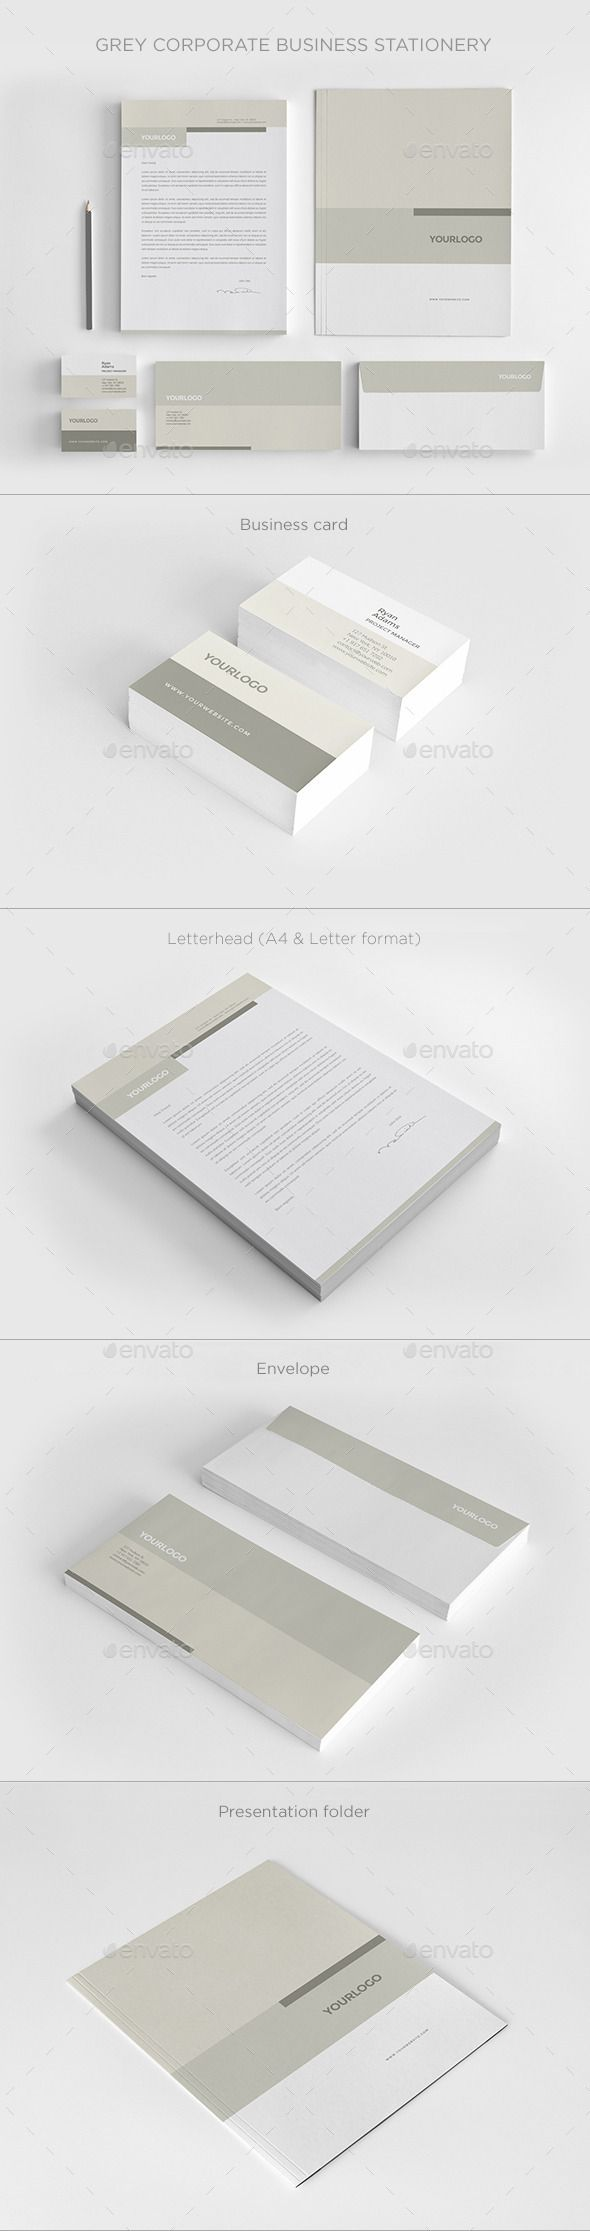 Grey Corporate Business Stationery - Stationery Print Templates  Clean and simple. Would look good with 2 greens, 1 grey and white.  Fonts are suitable.